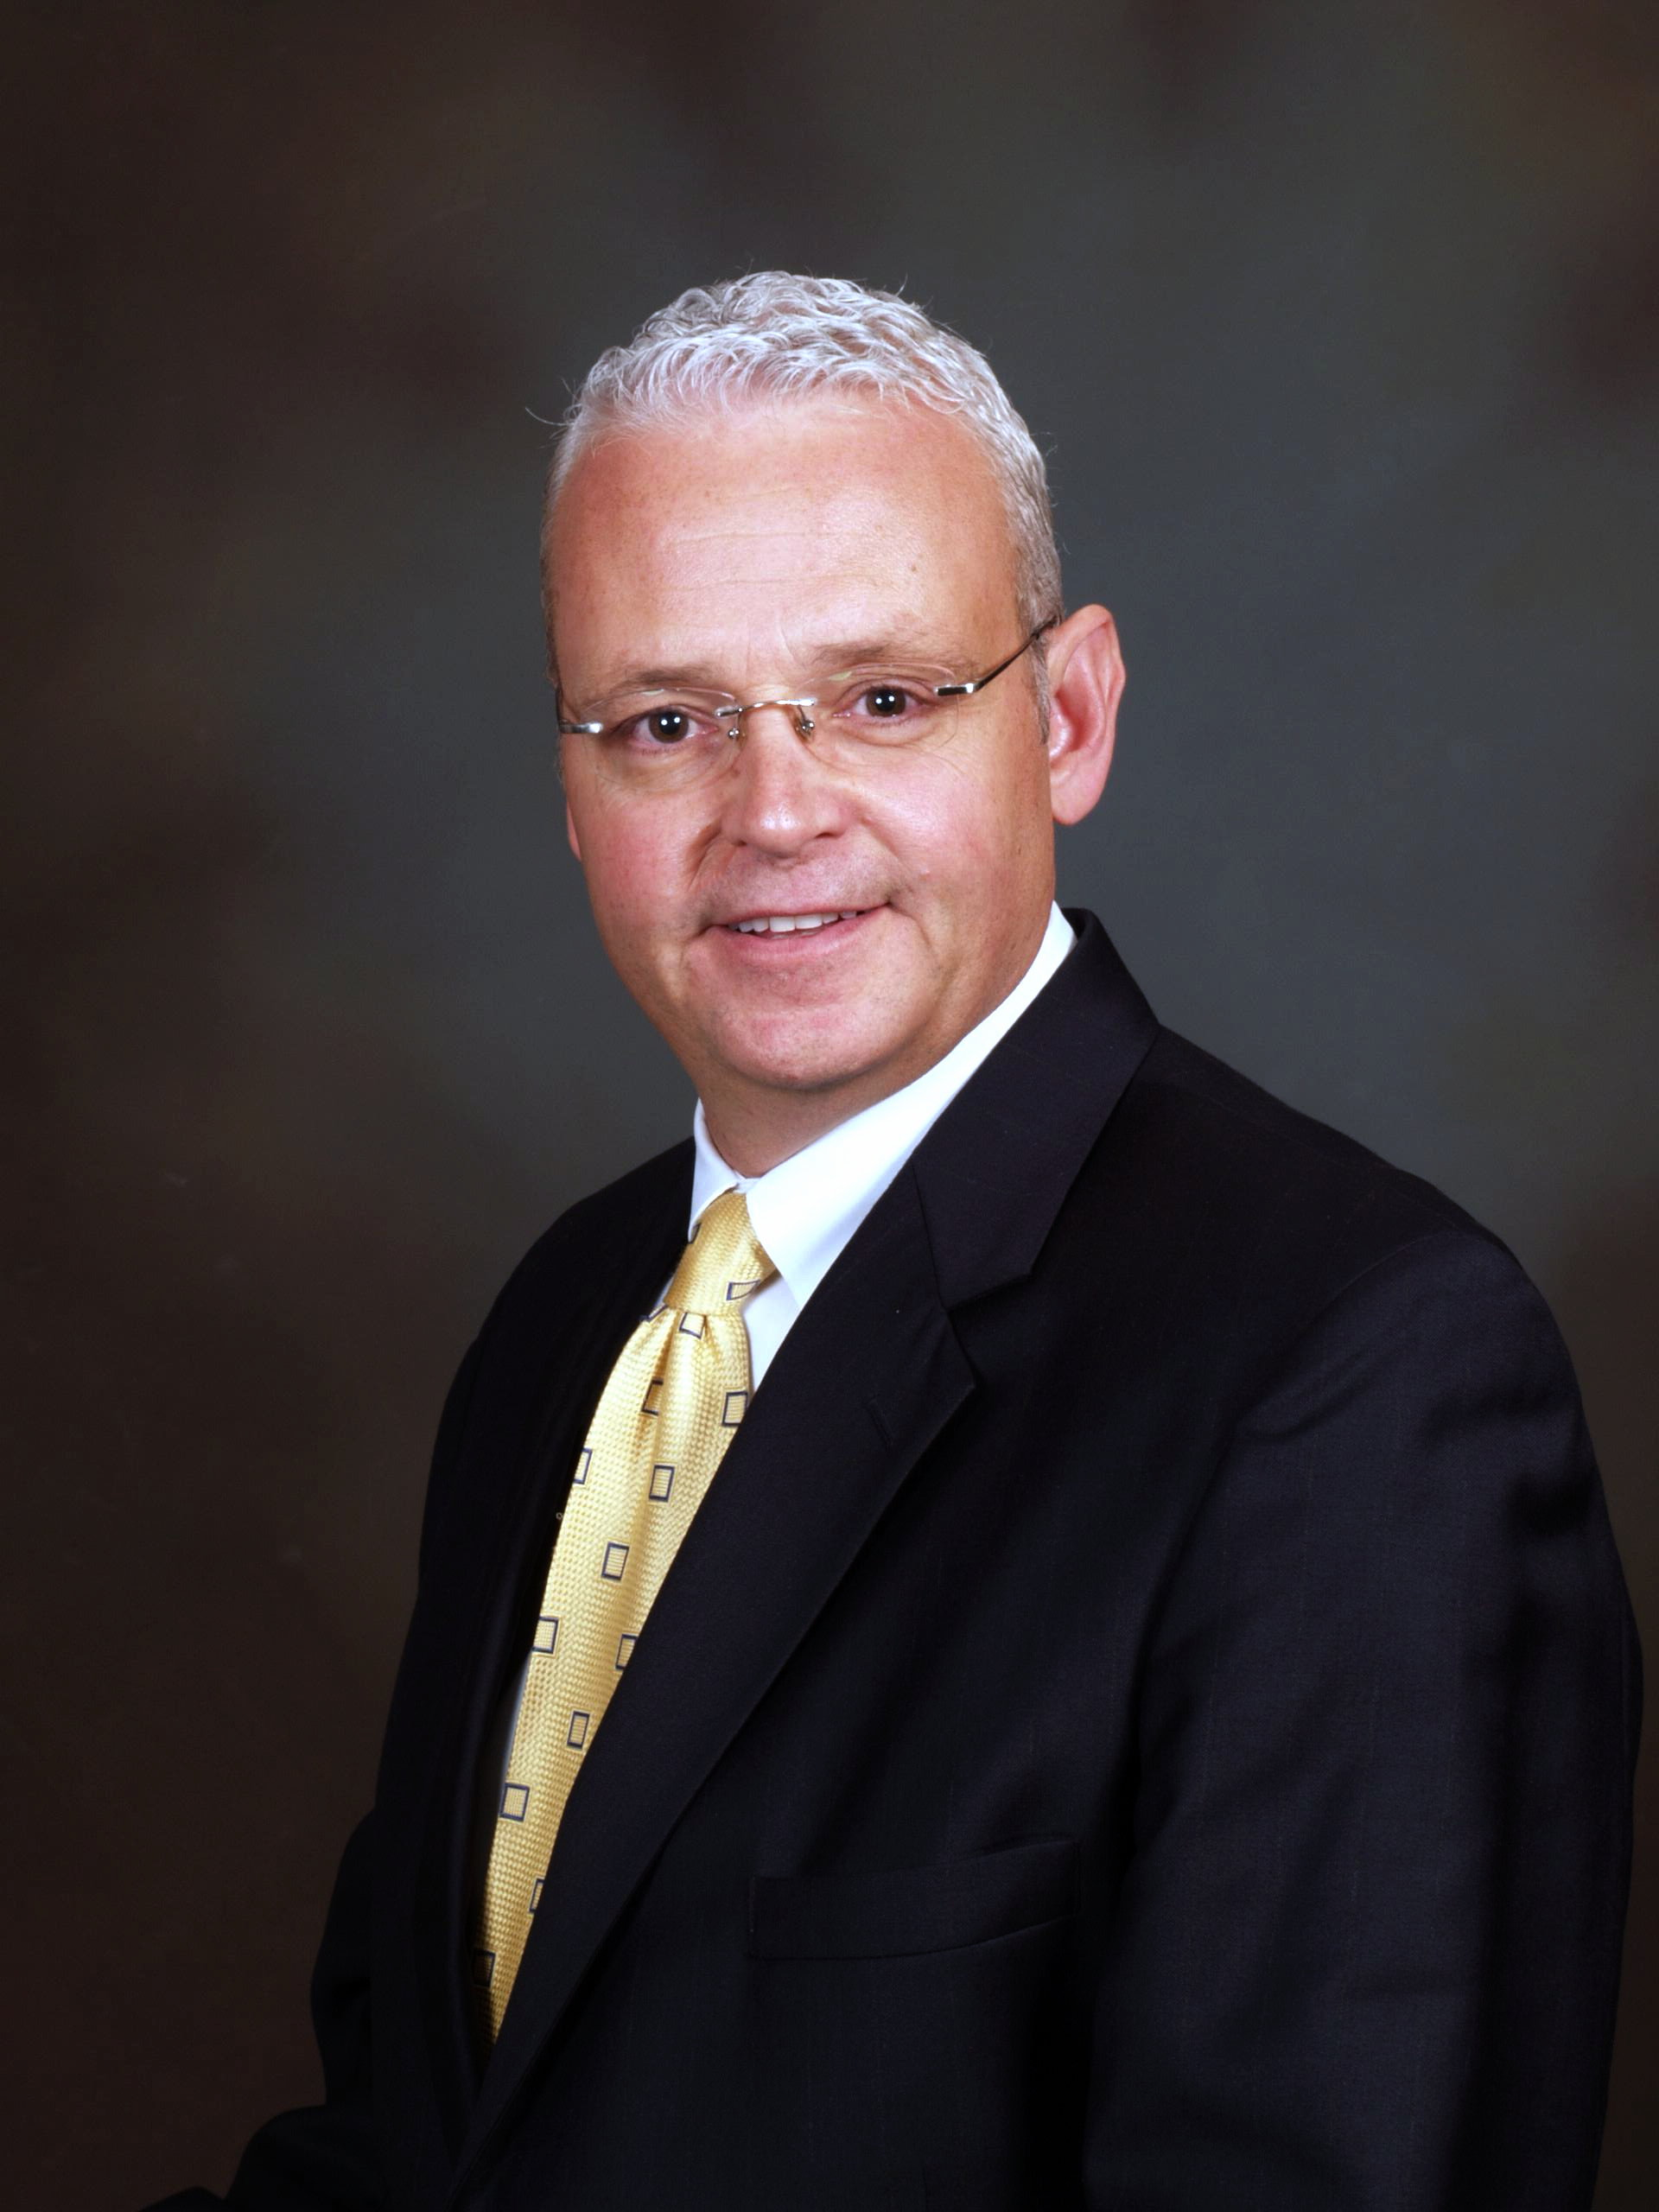 Thomas Ford, financial advisor Ridgefield CT